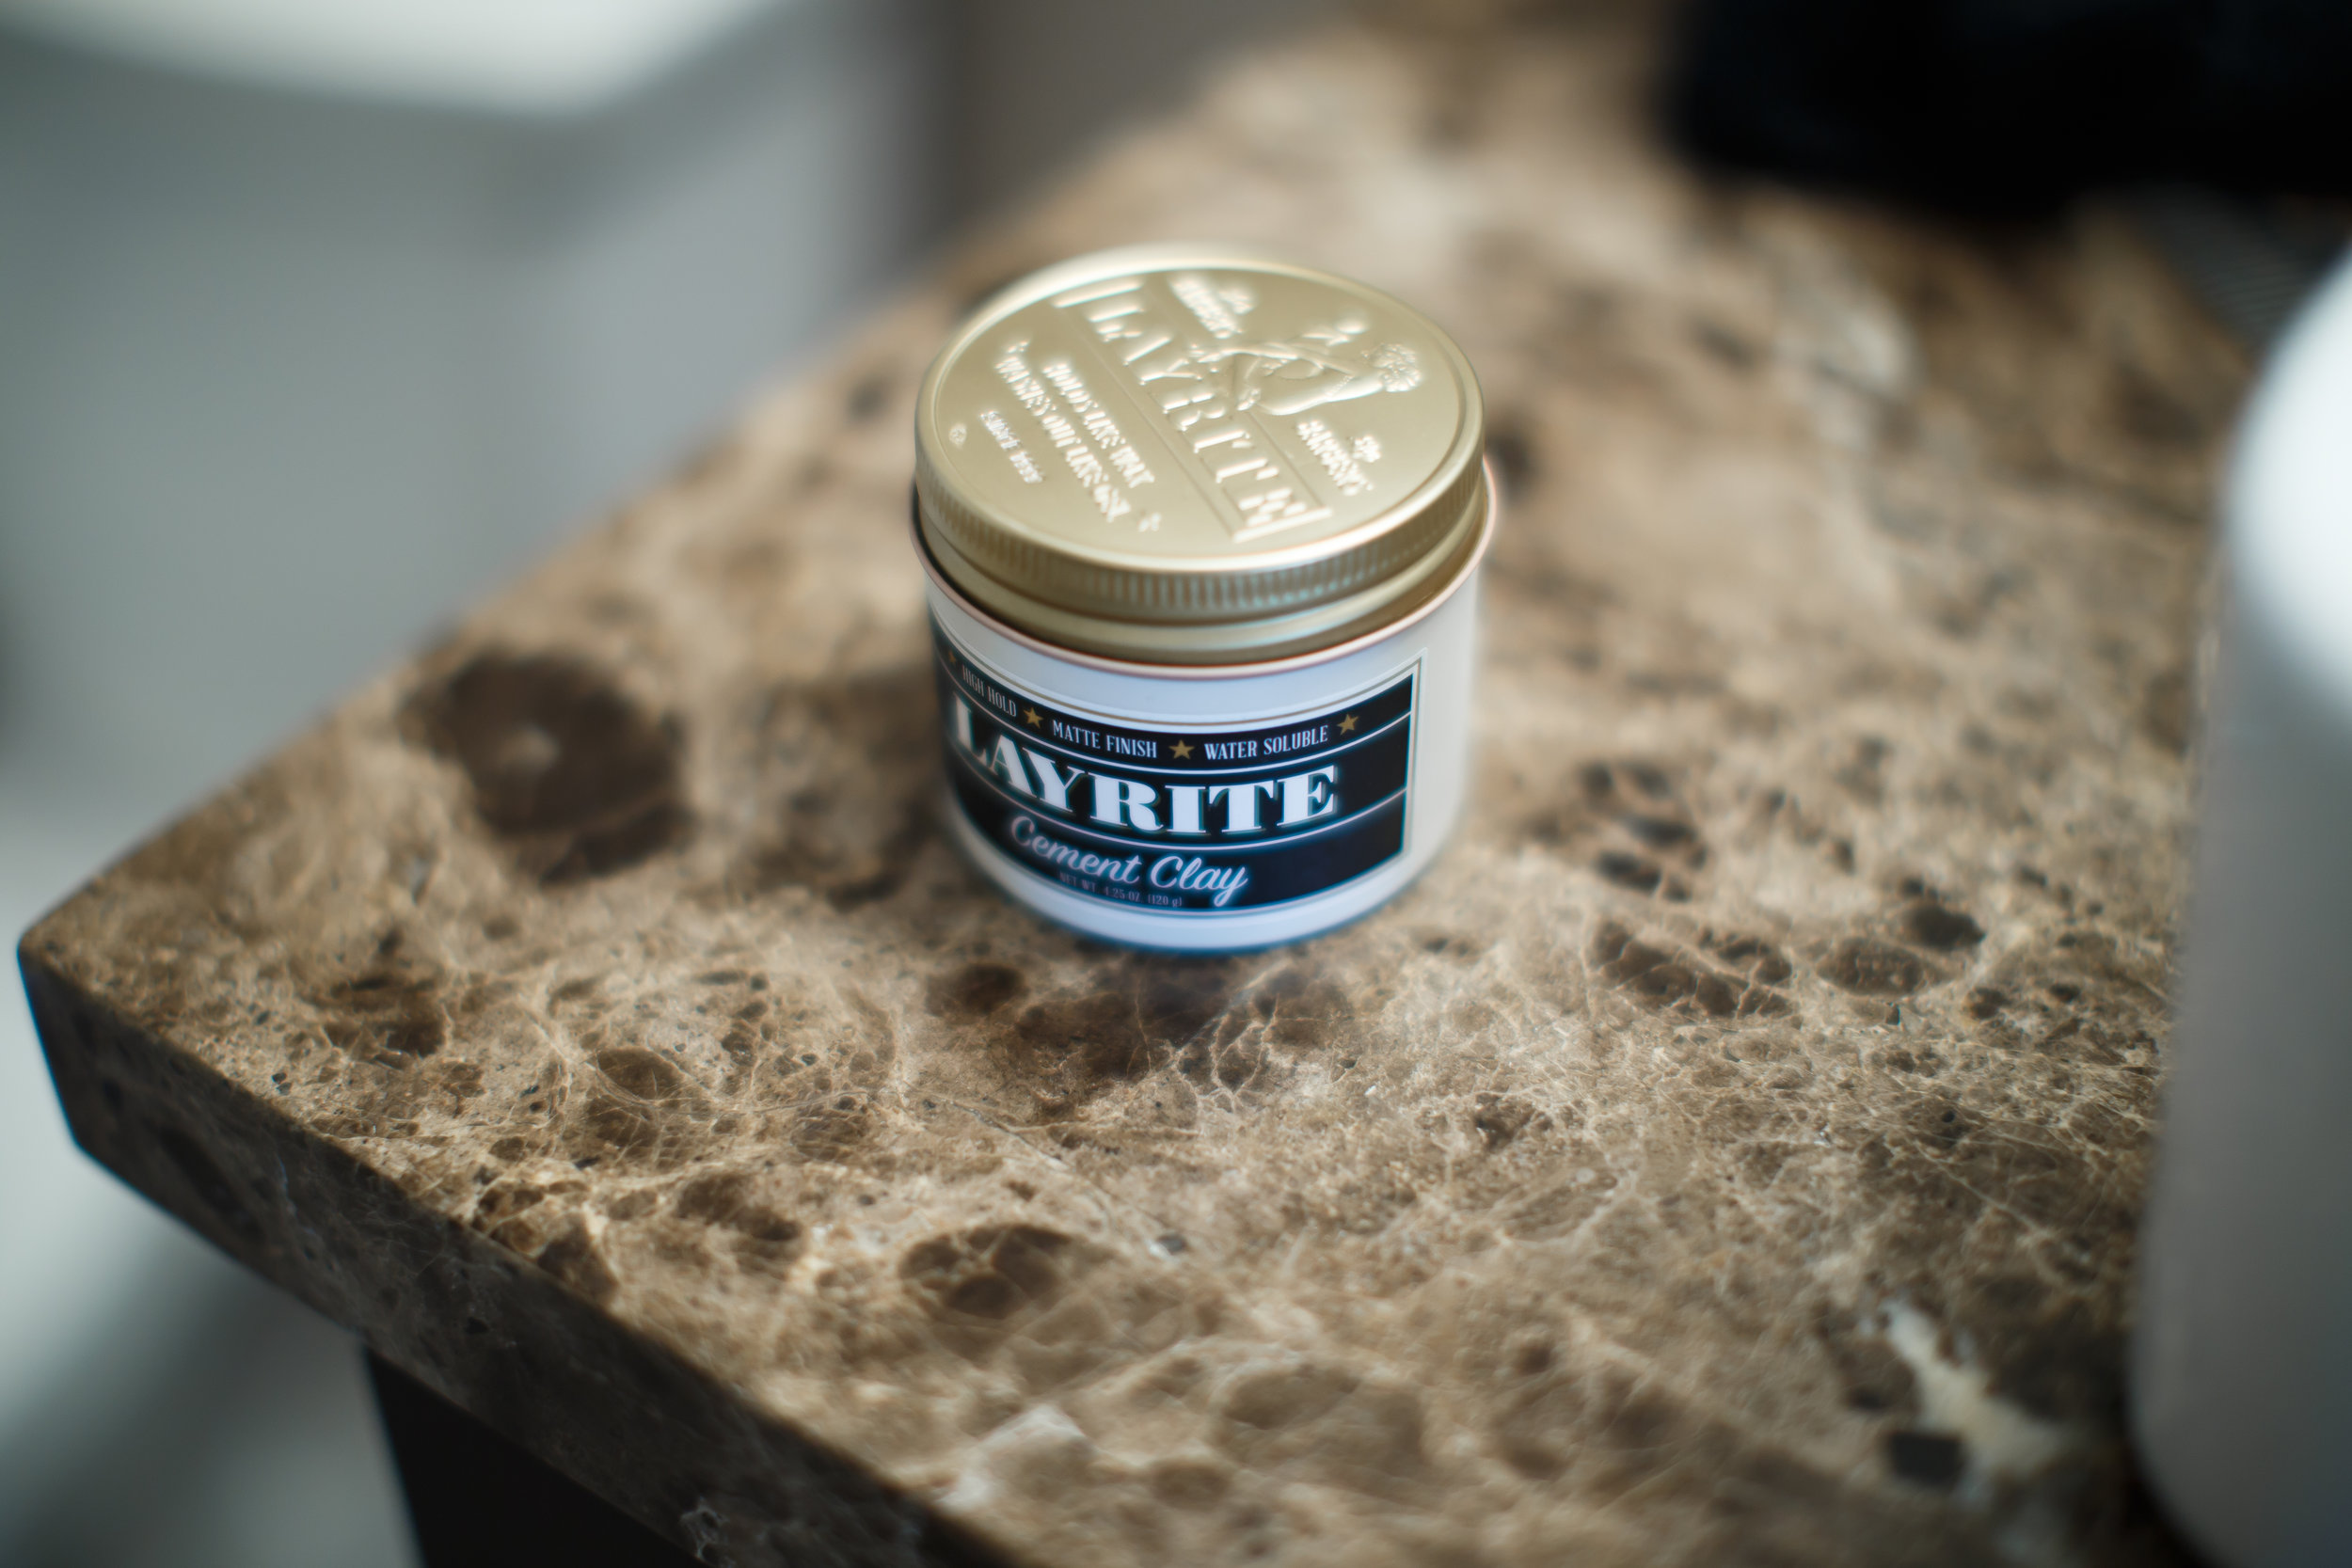 Layrite Cement Clay Pomade Review by The Pomp | Thank You Based Pomp TYBP